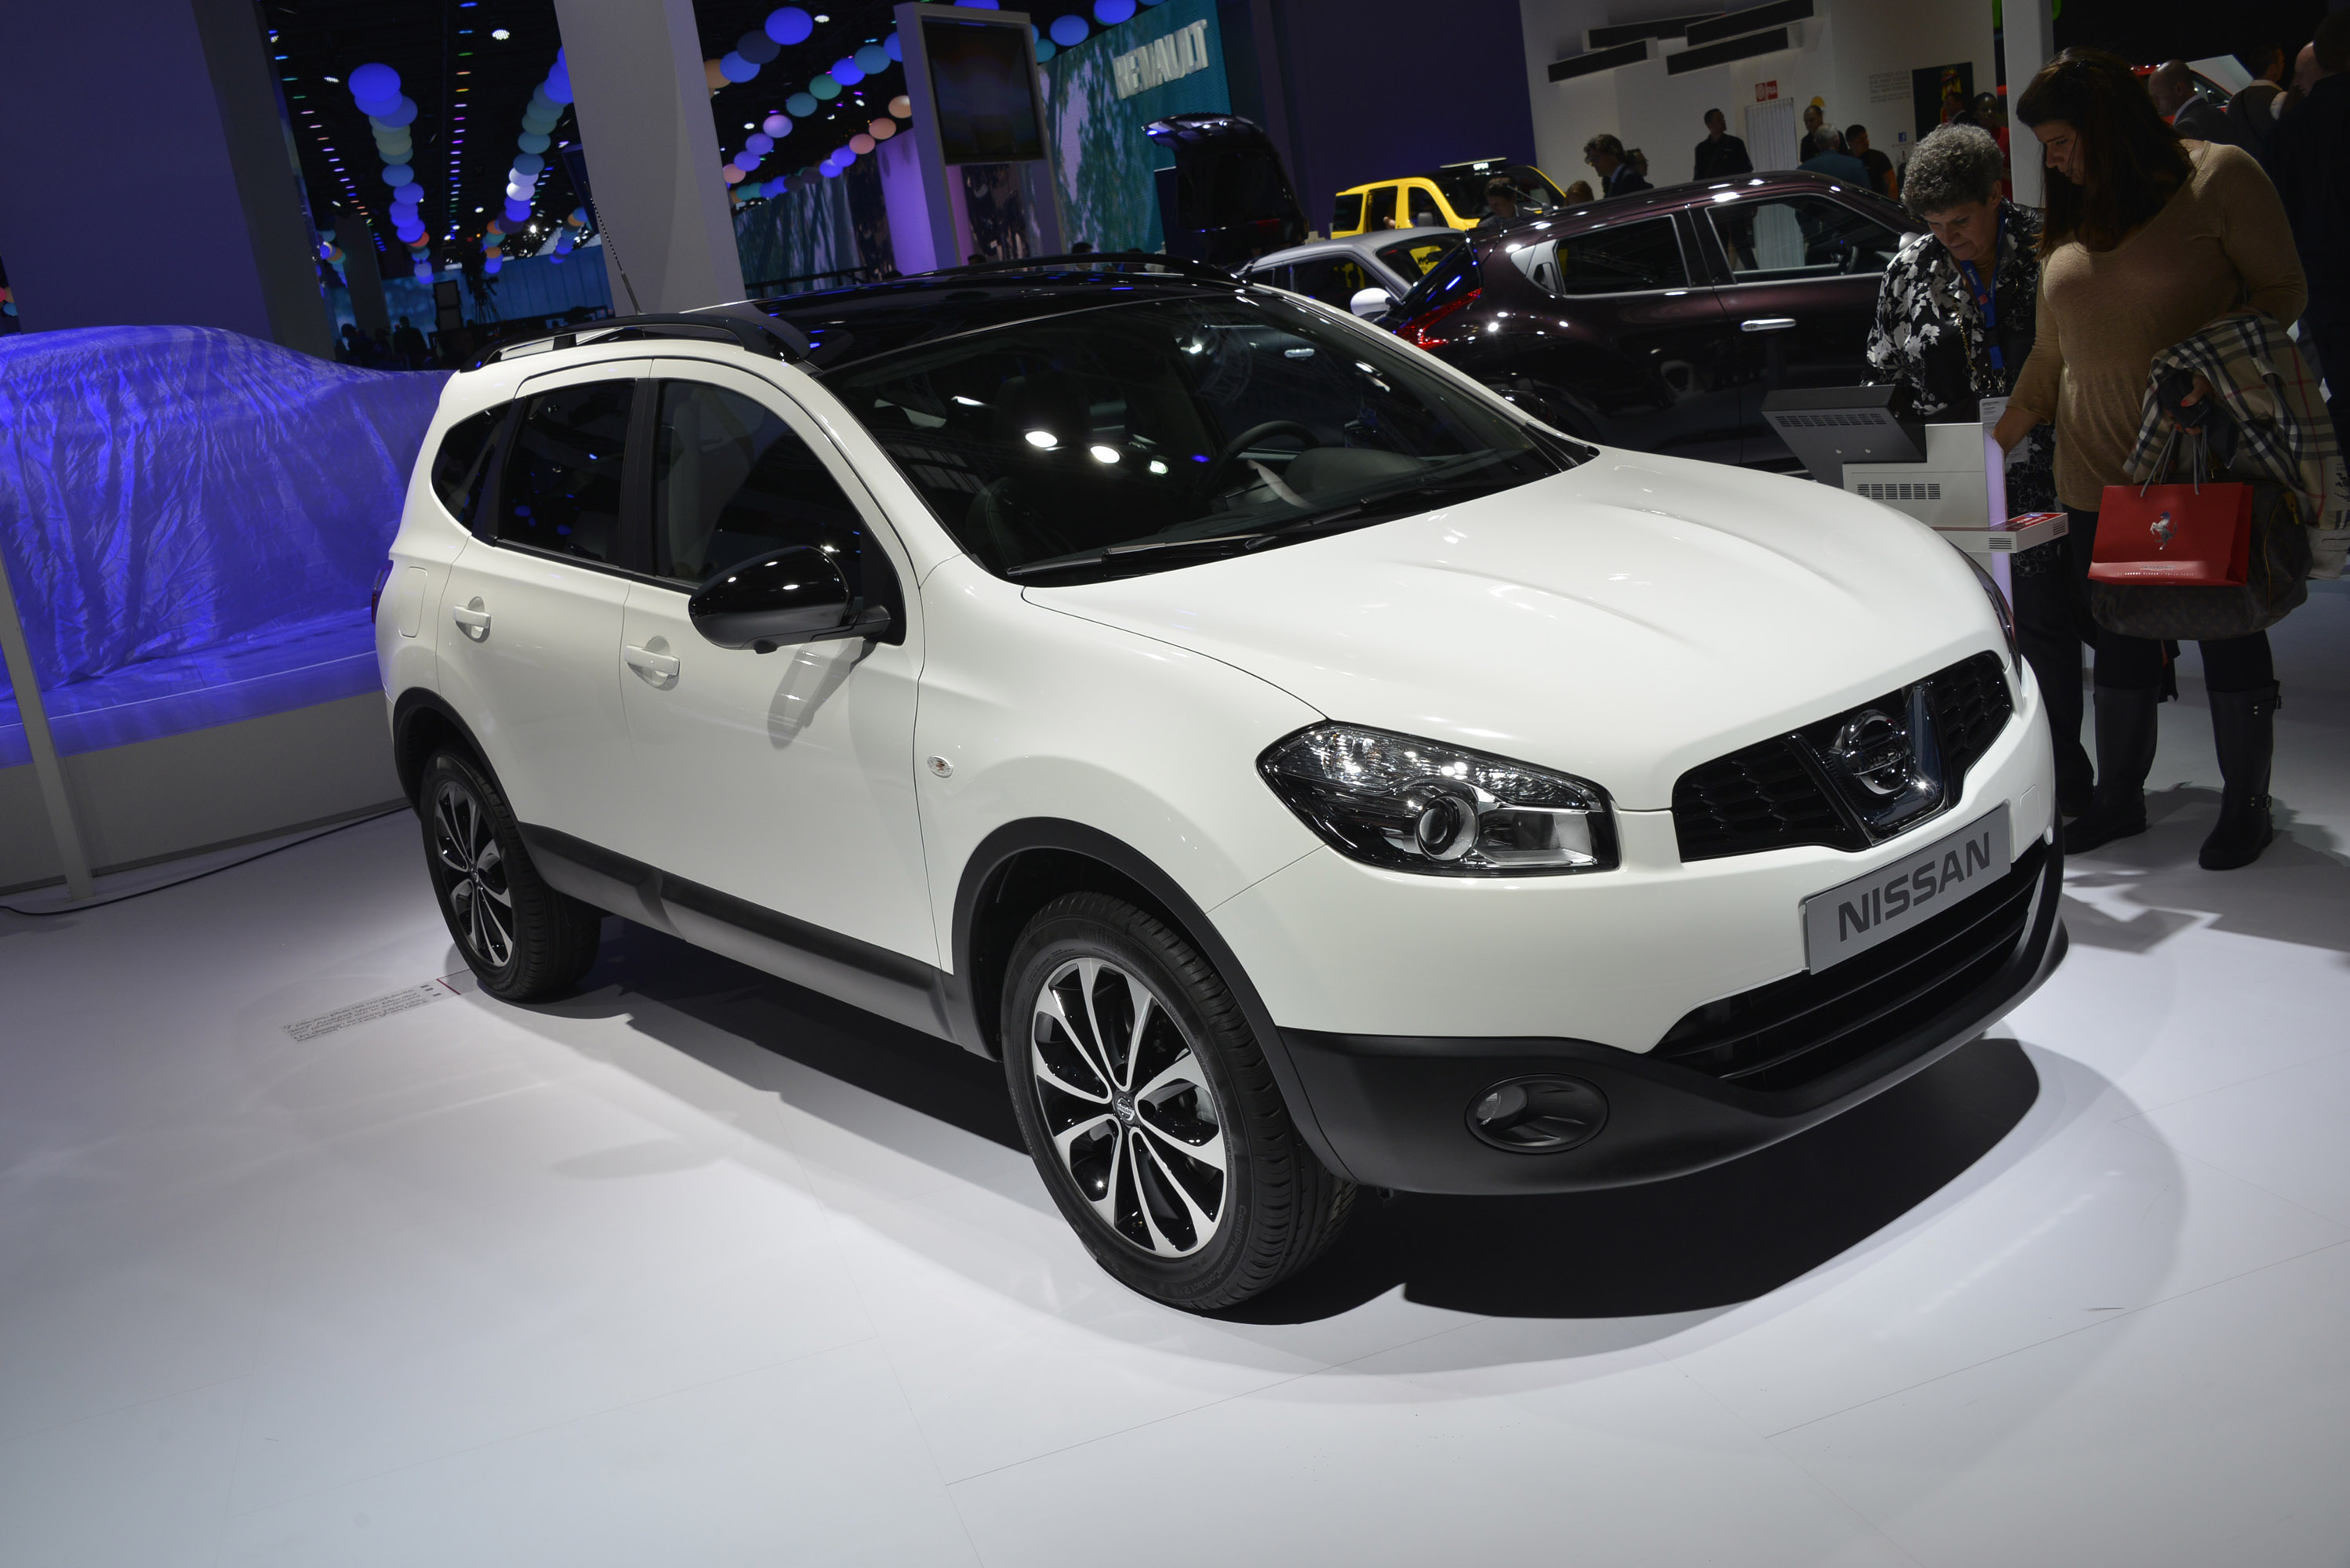 nissan qashqai 2013 review amazing pictures and images look at the car. Black Bedroom Furniture Sets. Home Design Ideas